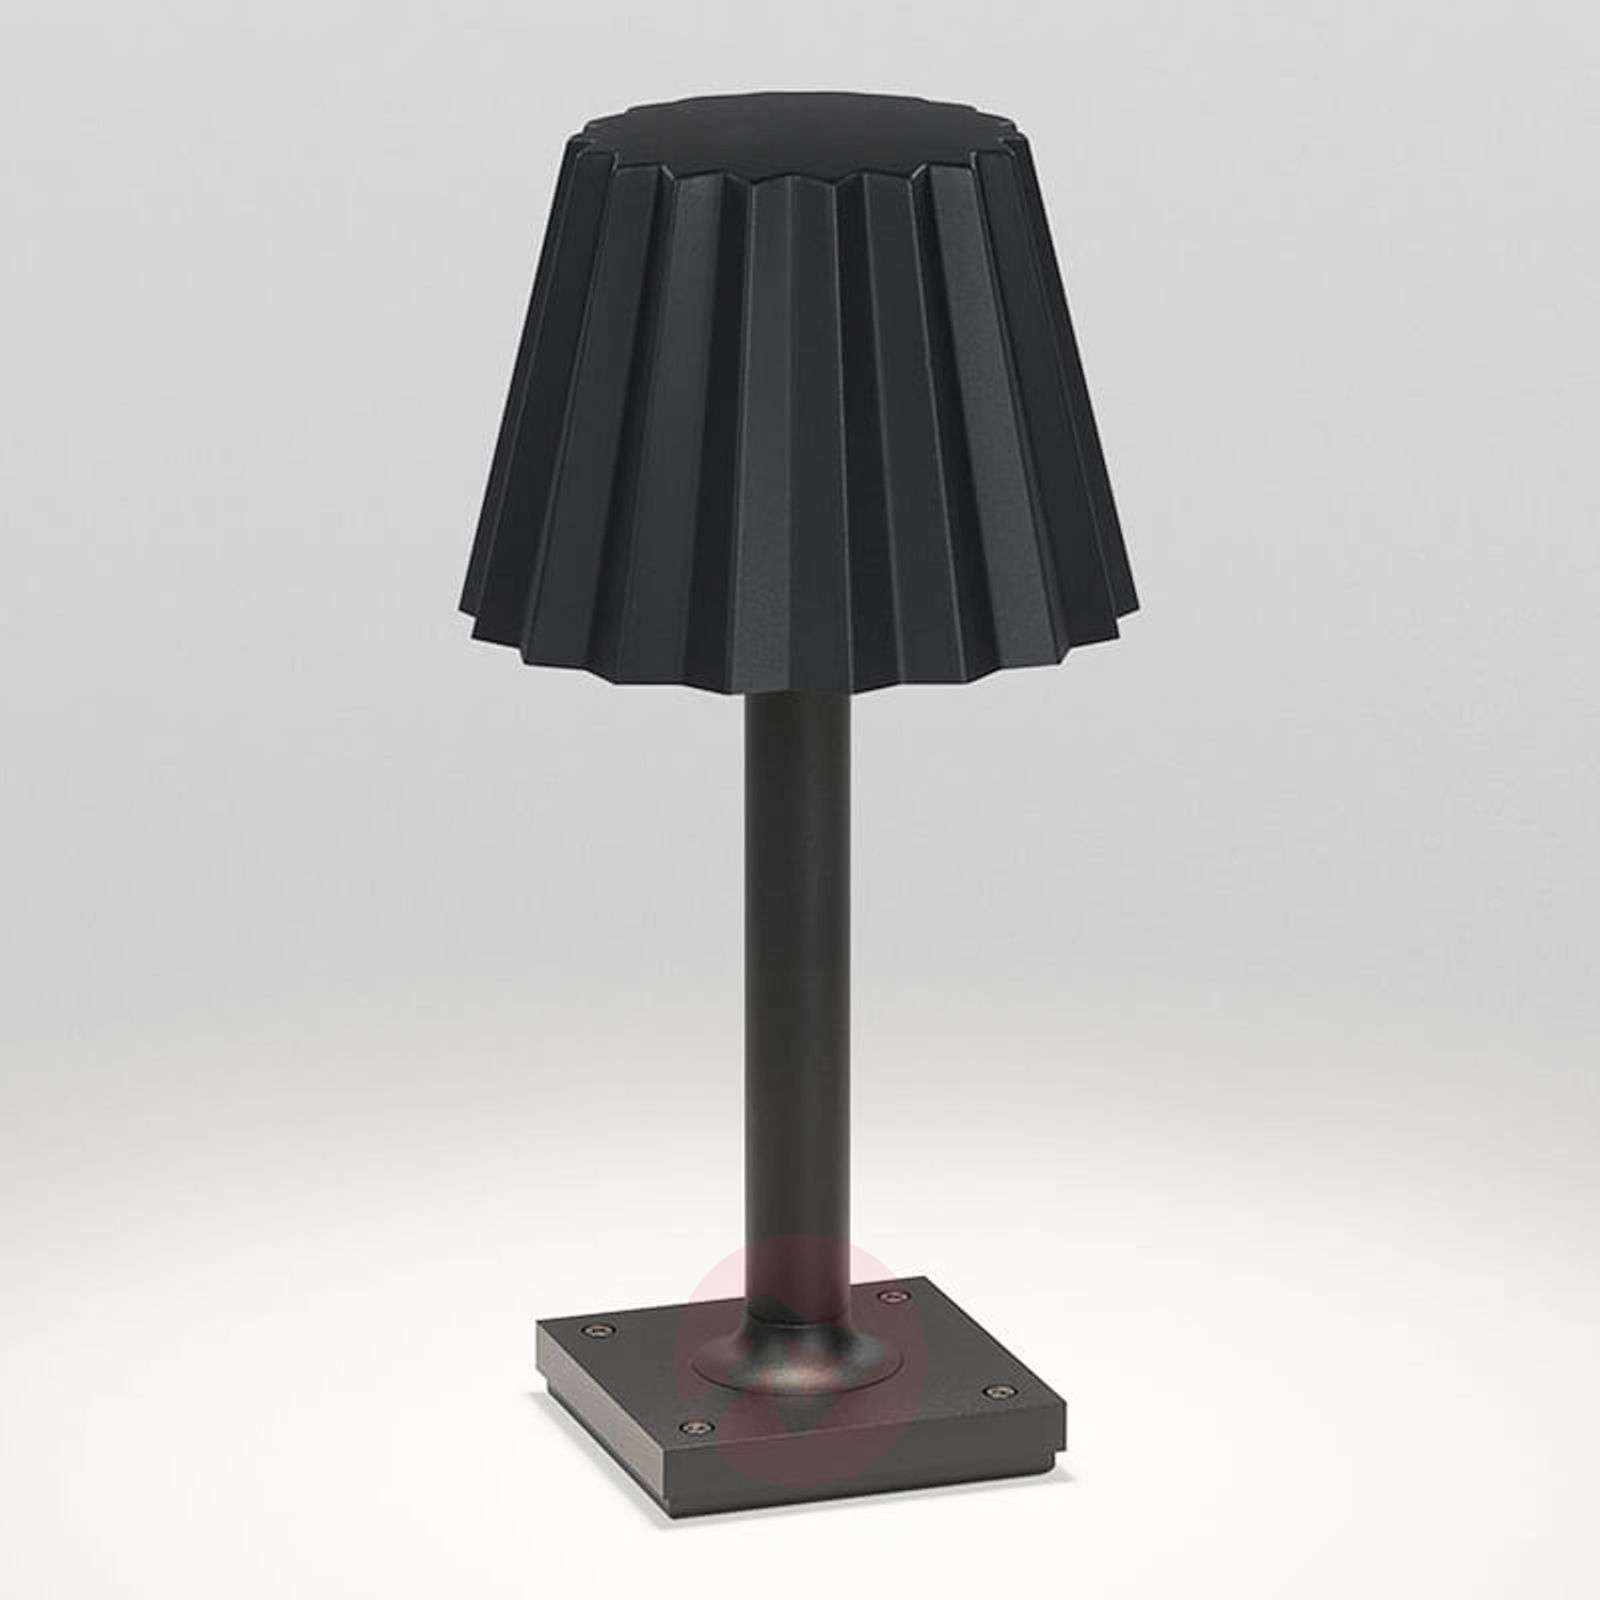 led outdoor table lamp butler p 303 lights co uk